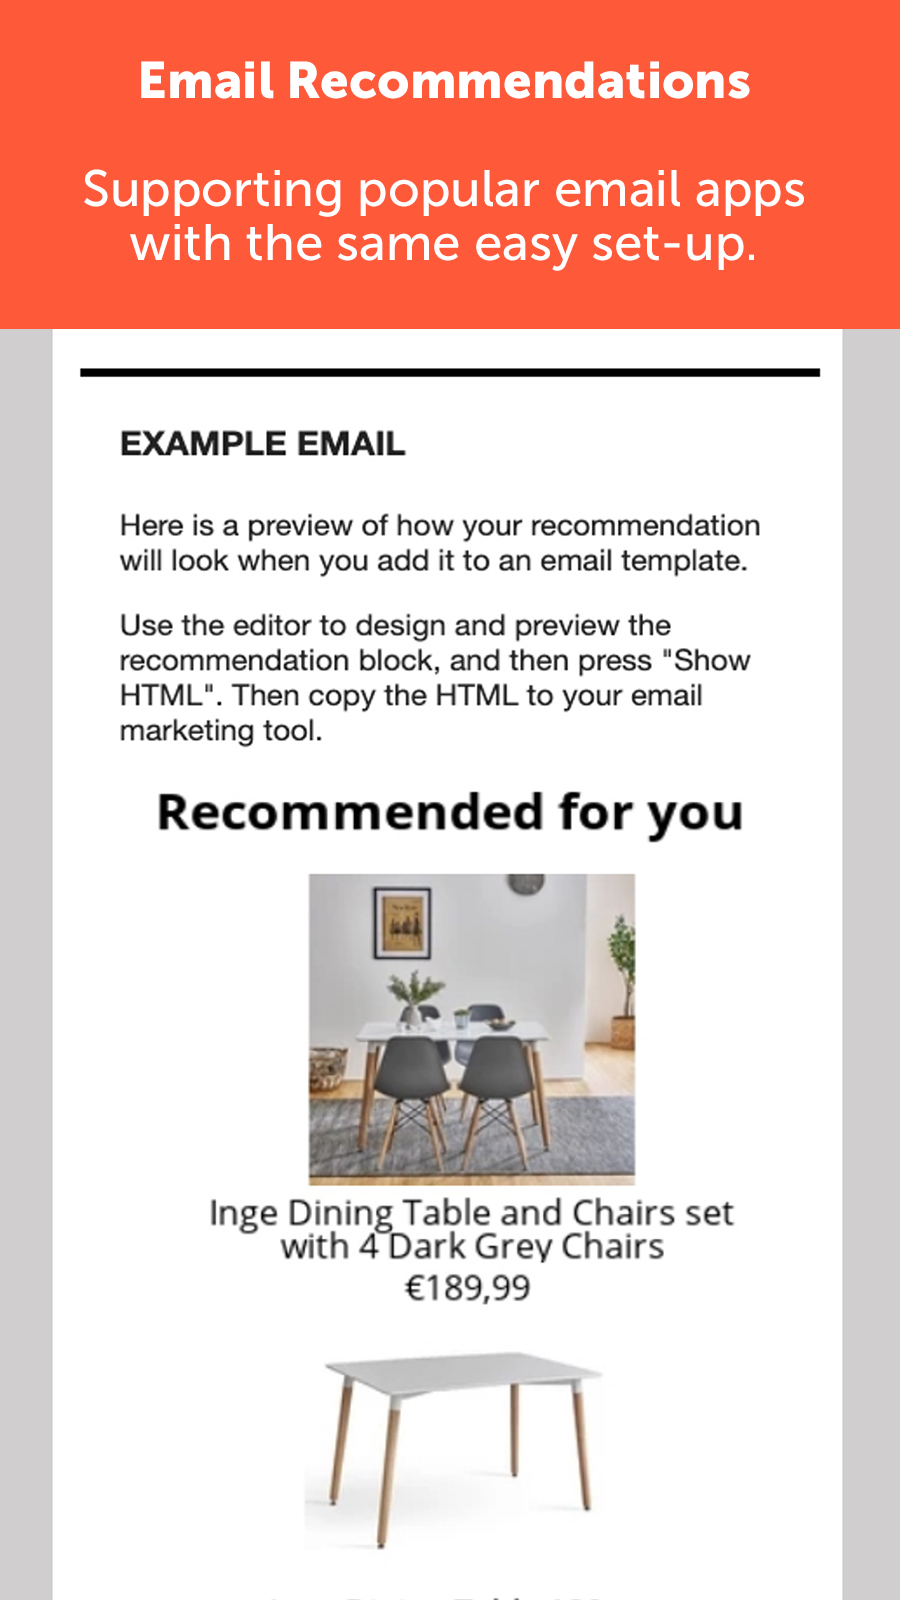 Email product recommendations like Amazon